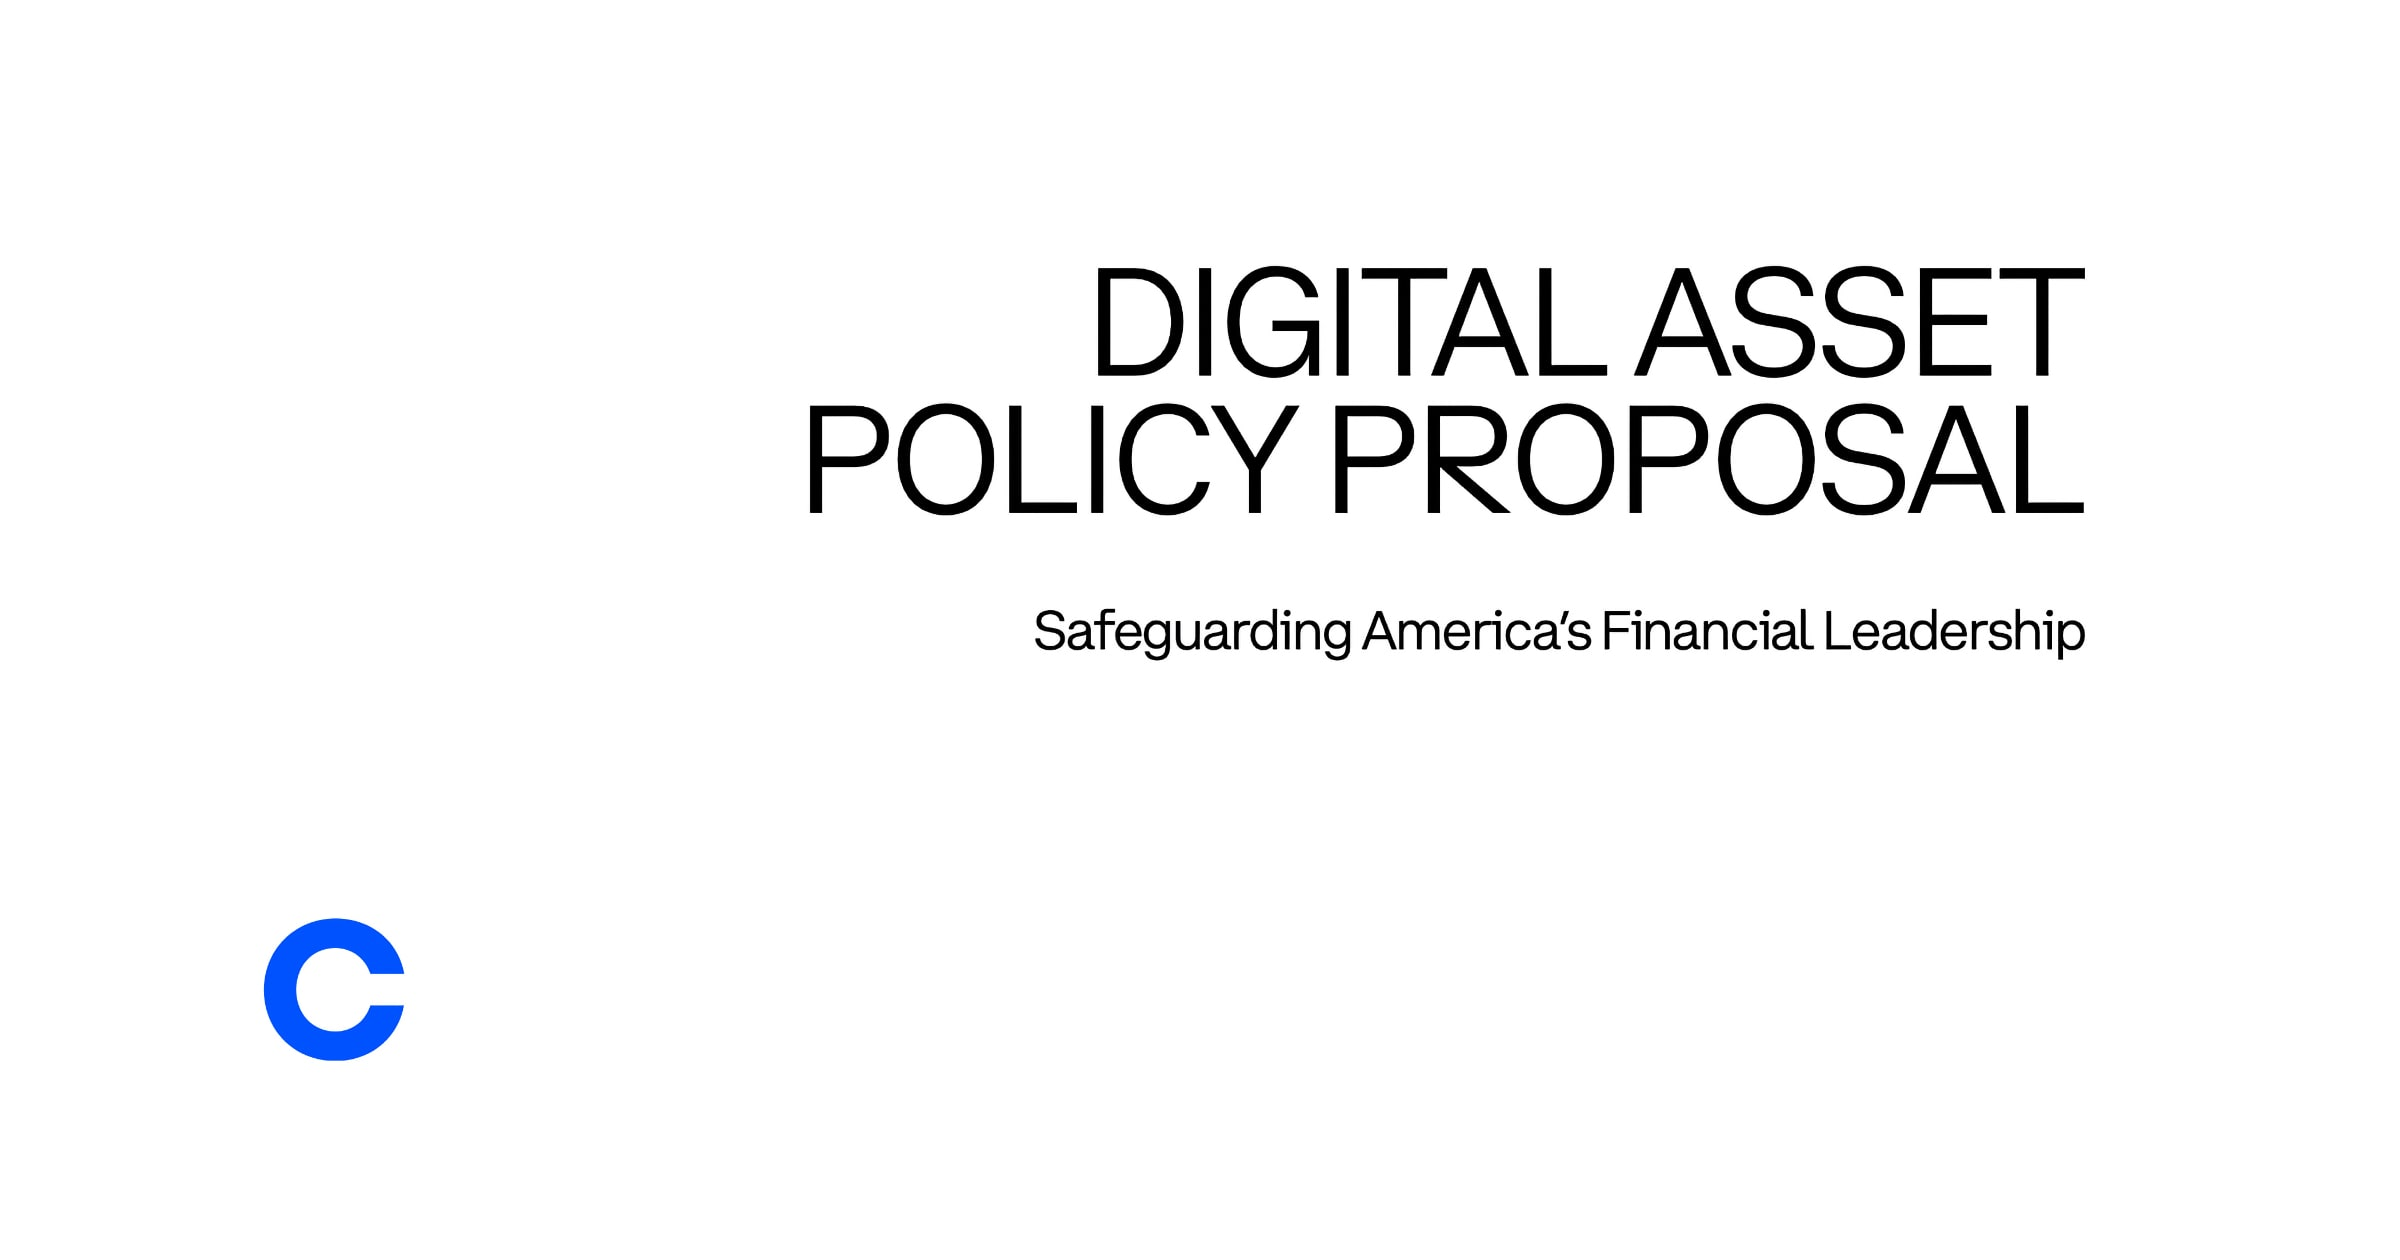 coinbase digital asset policy proposal